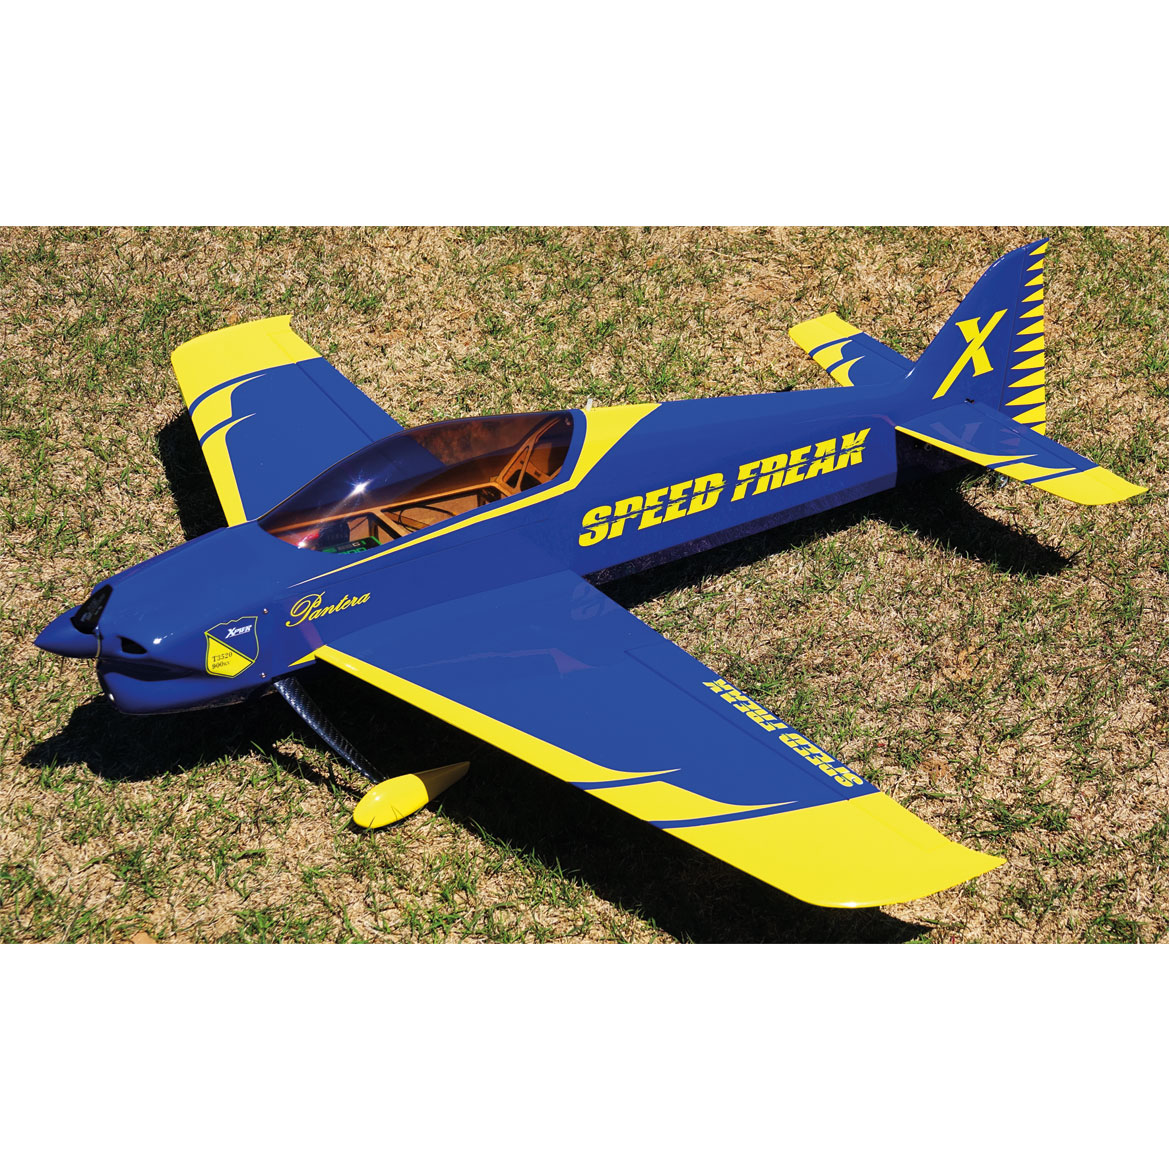 "Extreme Flight Pantera 52""- Yellow/Blue - ARF"